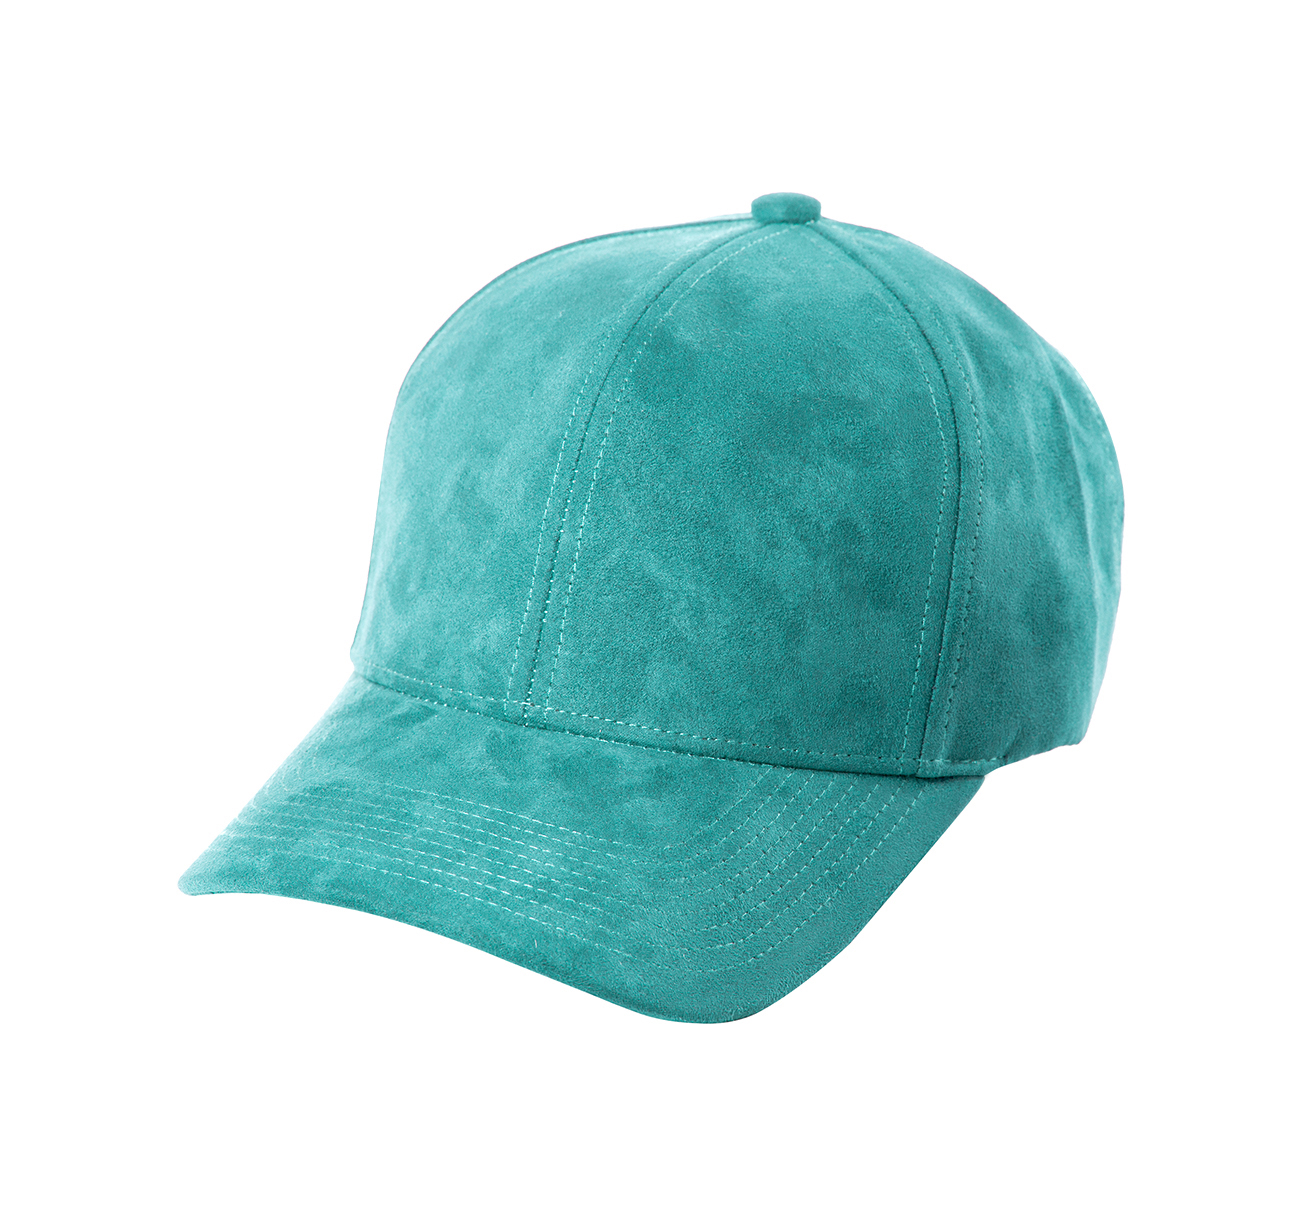 BASEBALL CAP TURQUOISE SUEDE SILVER FRONT SIDE